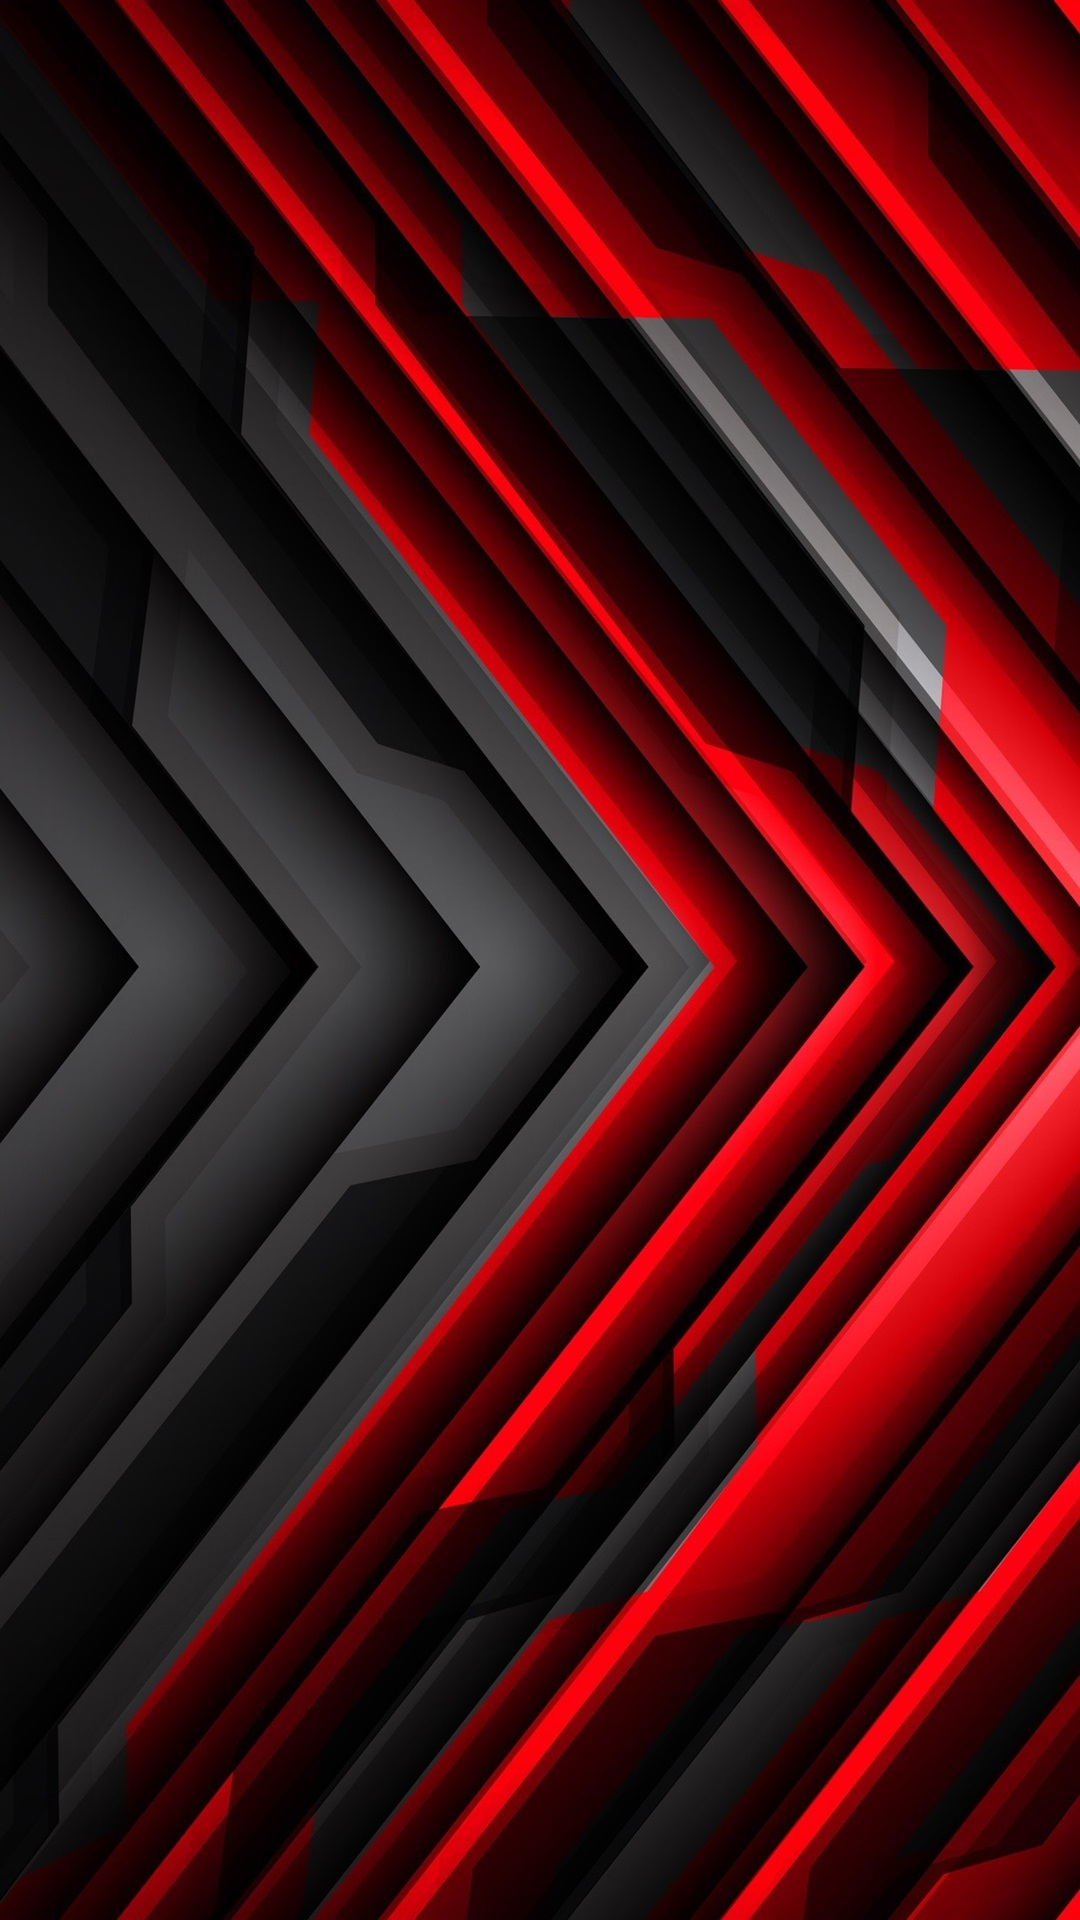 Black And Red Striped Arrow Abstract 1080x1920 Iphone 8 7 6 6s Plus Wallpaper Background Picture Image